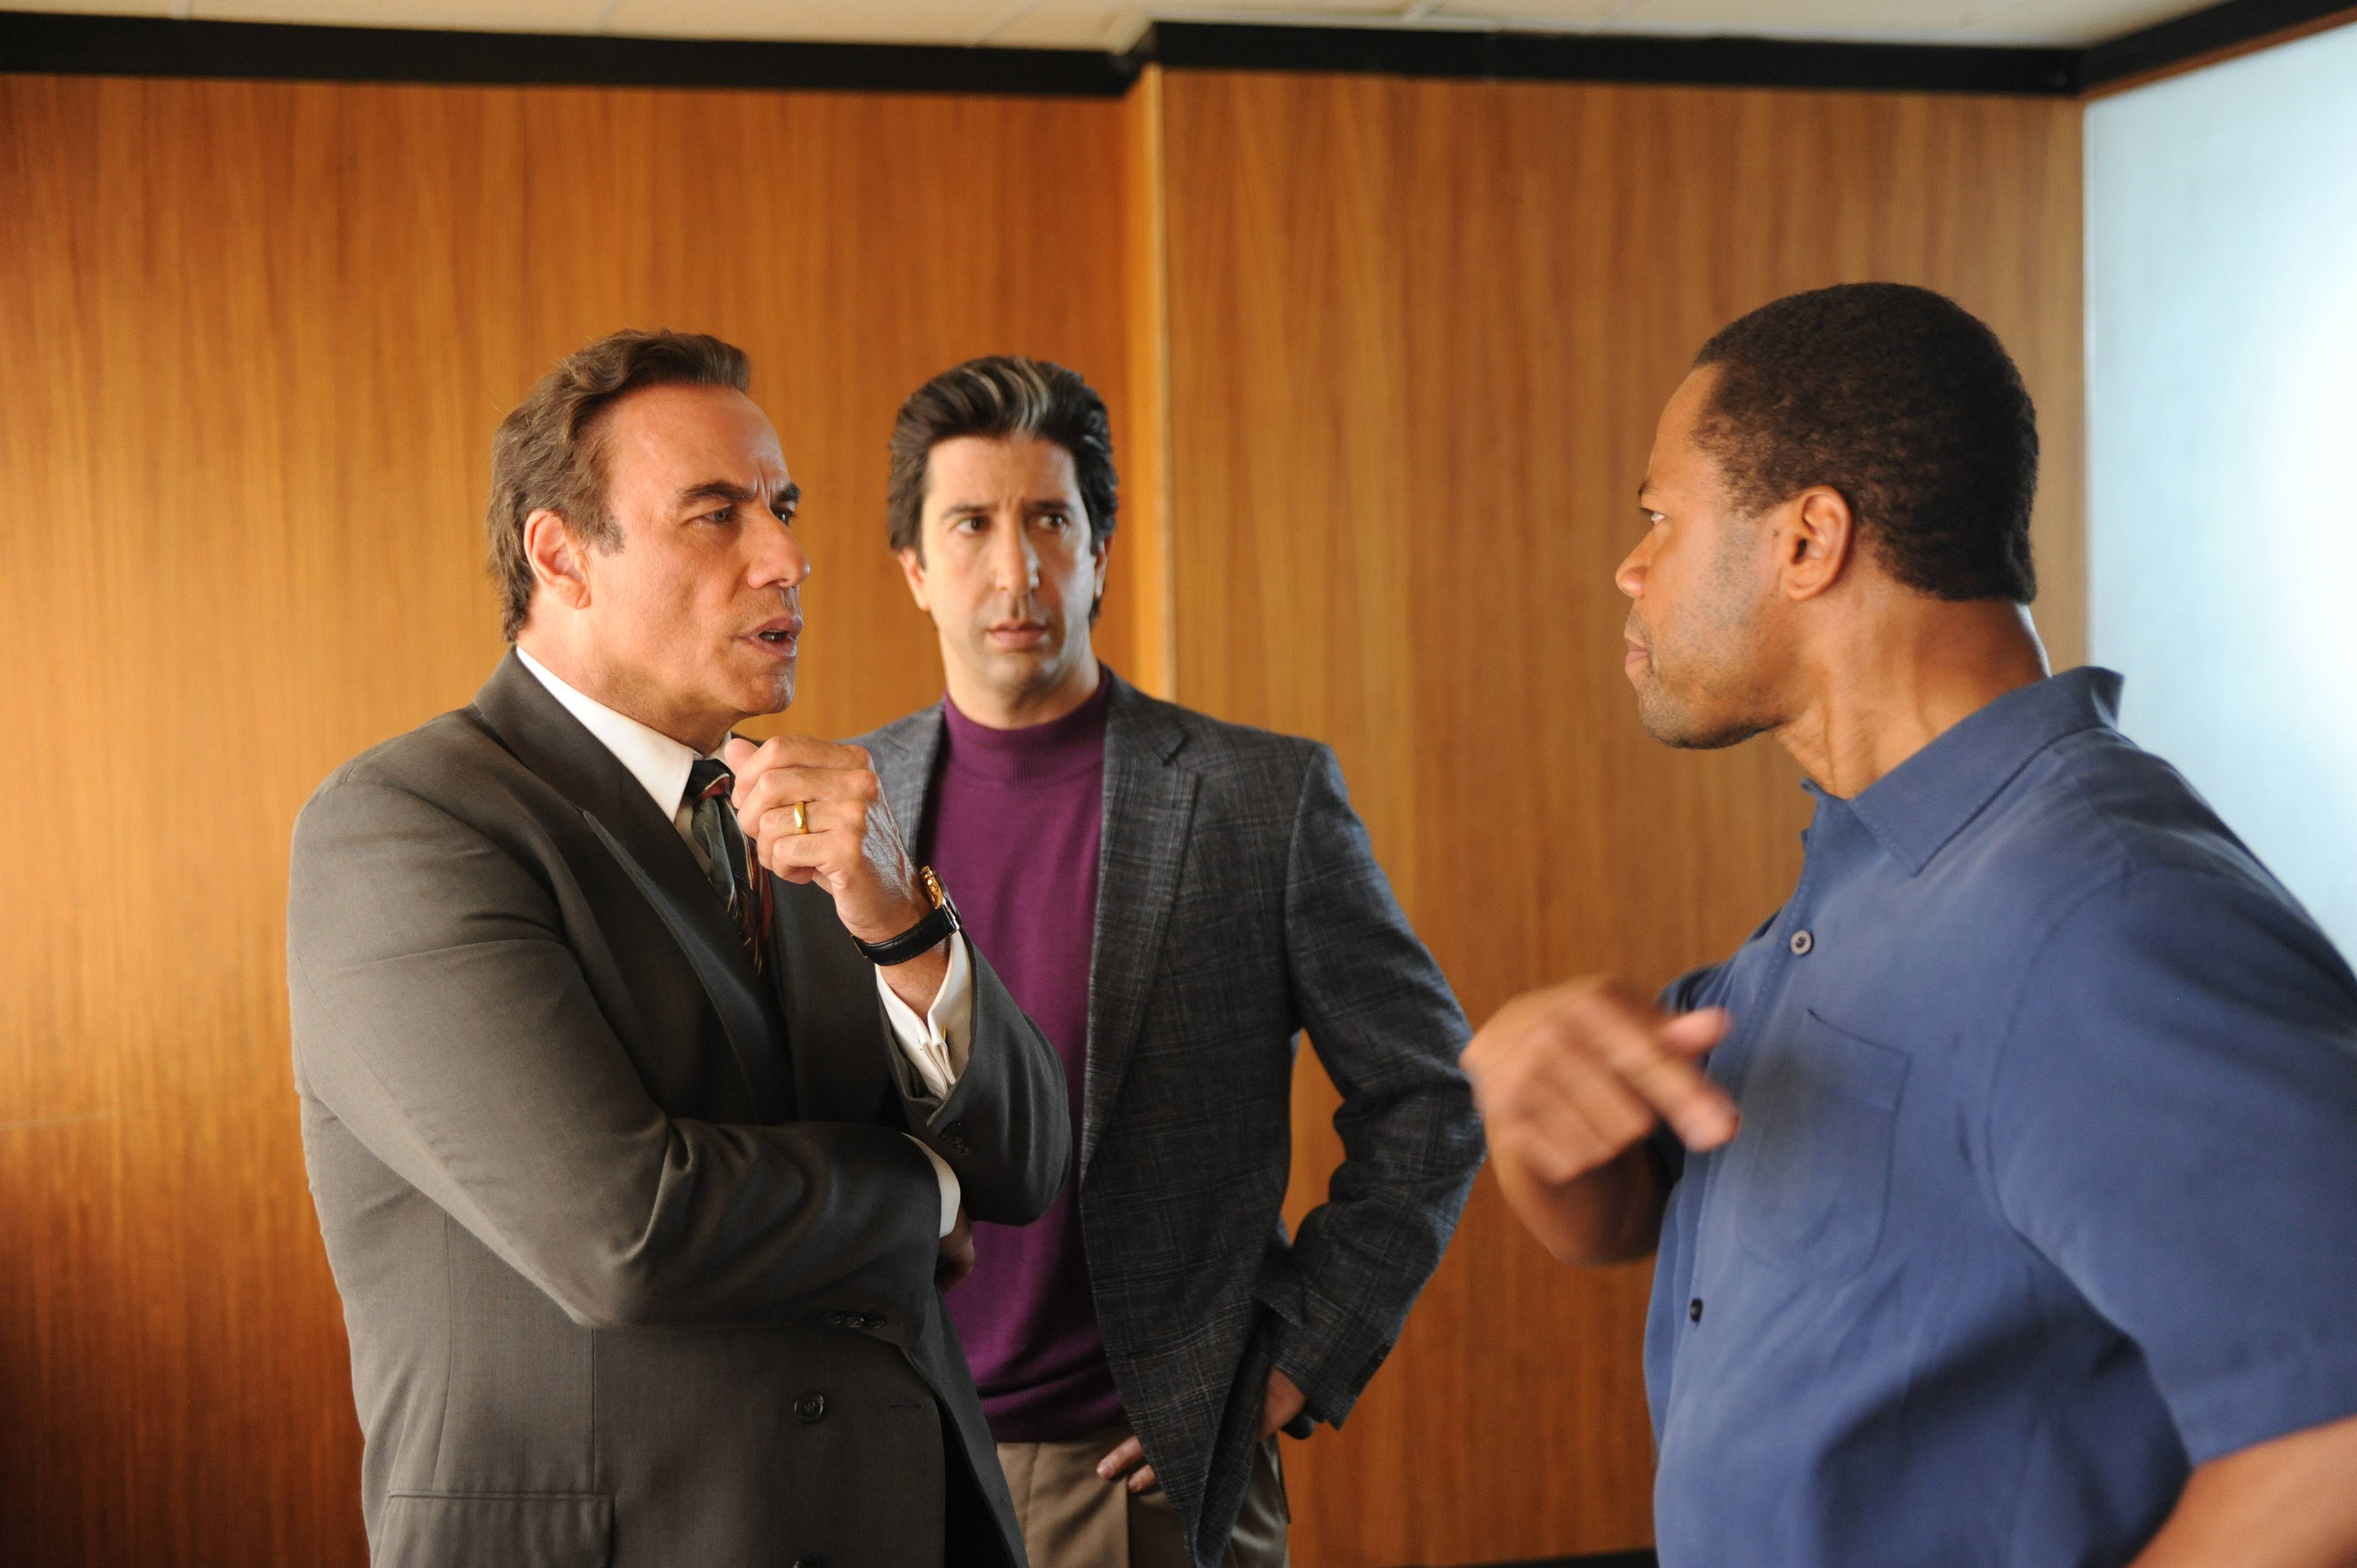 (l-r) John Travolta as Robert Shapiro, David Schwimmer as Robert Kardashian, Cuba Gooding, Jr. as O.J. Simpson in The People v O.J. Simpson